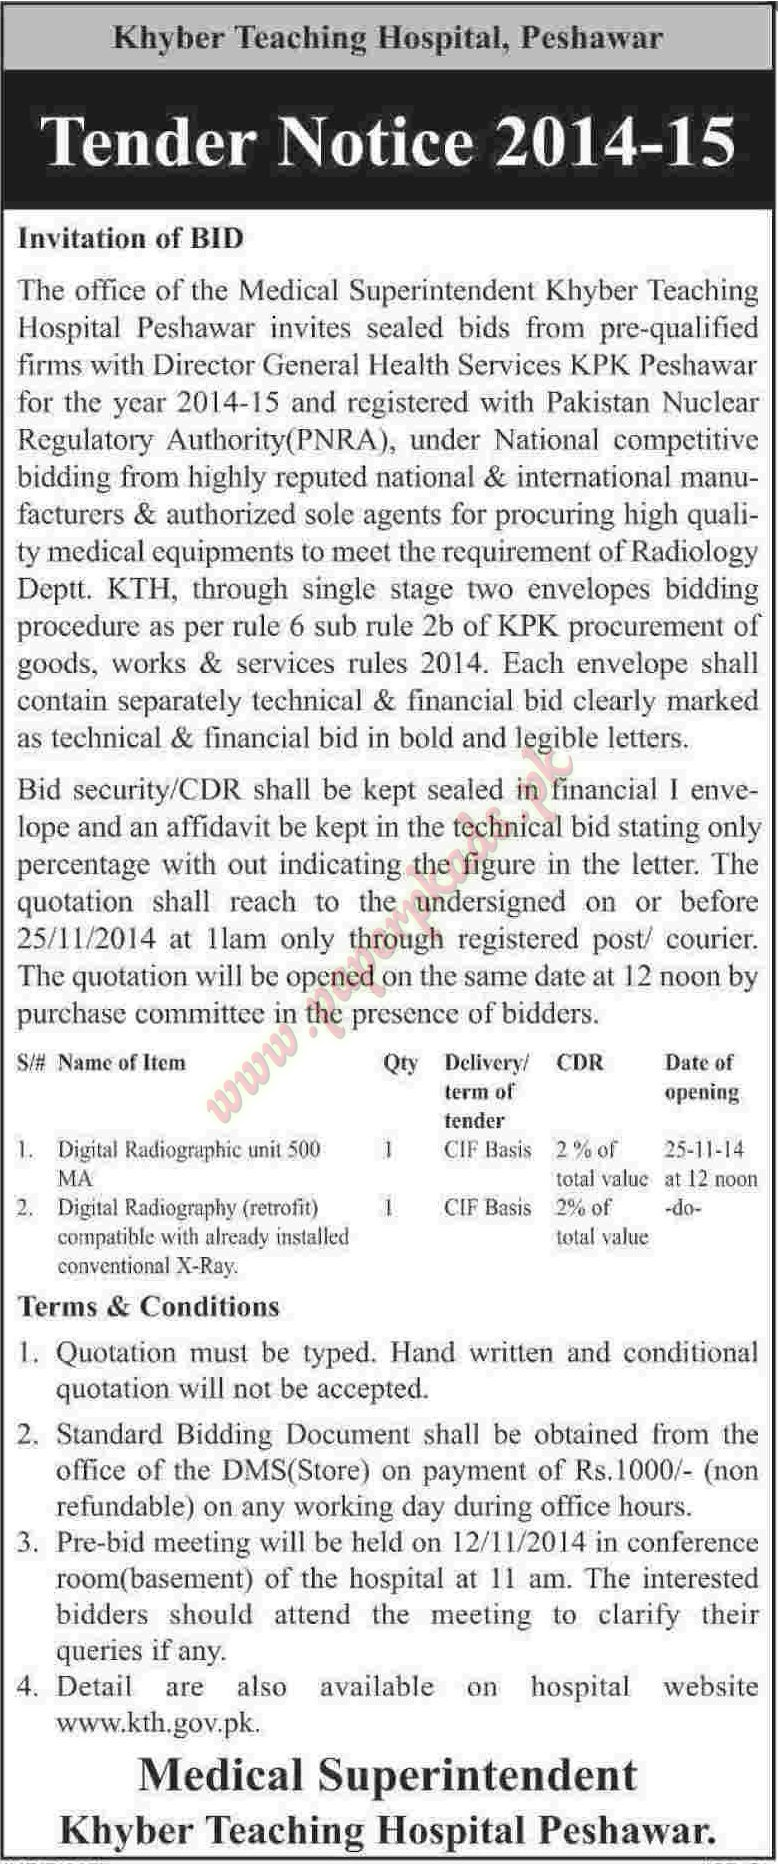 Khyber Teaching Hospital Peshawar - Dawn Tender 31 October 2014